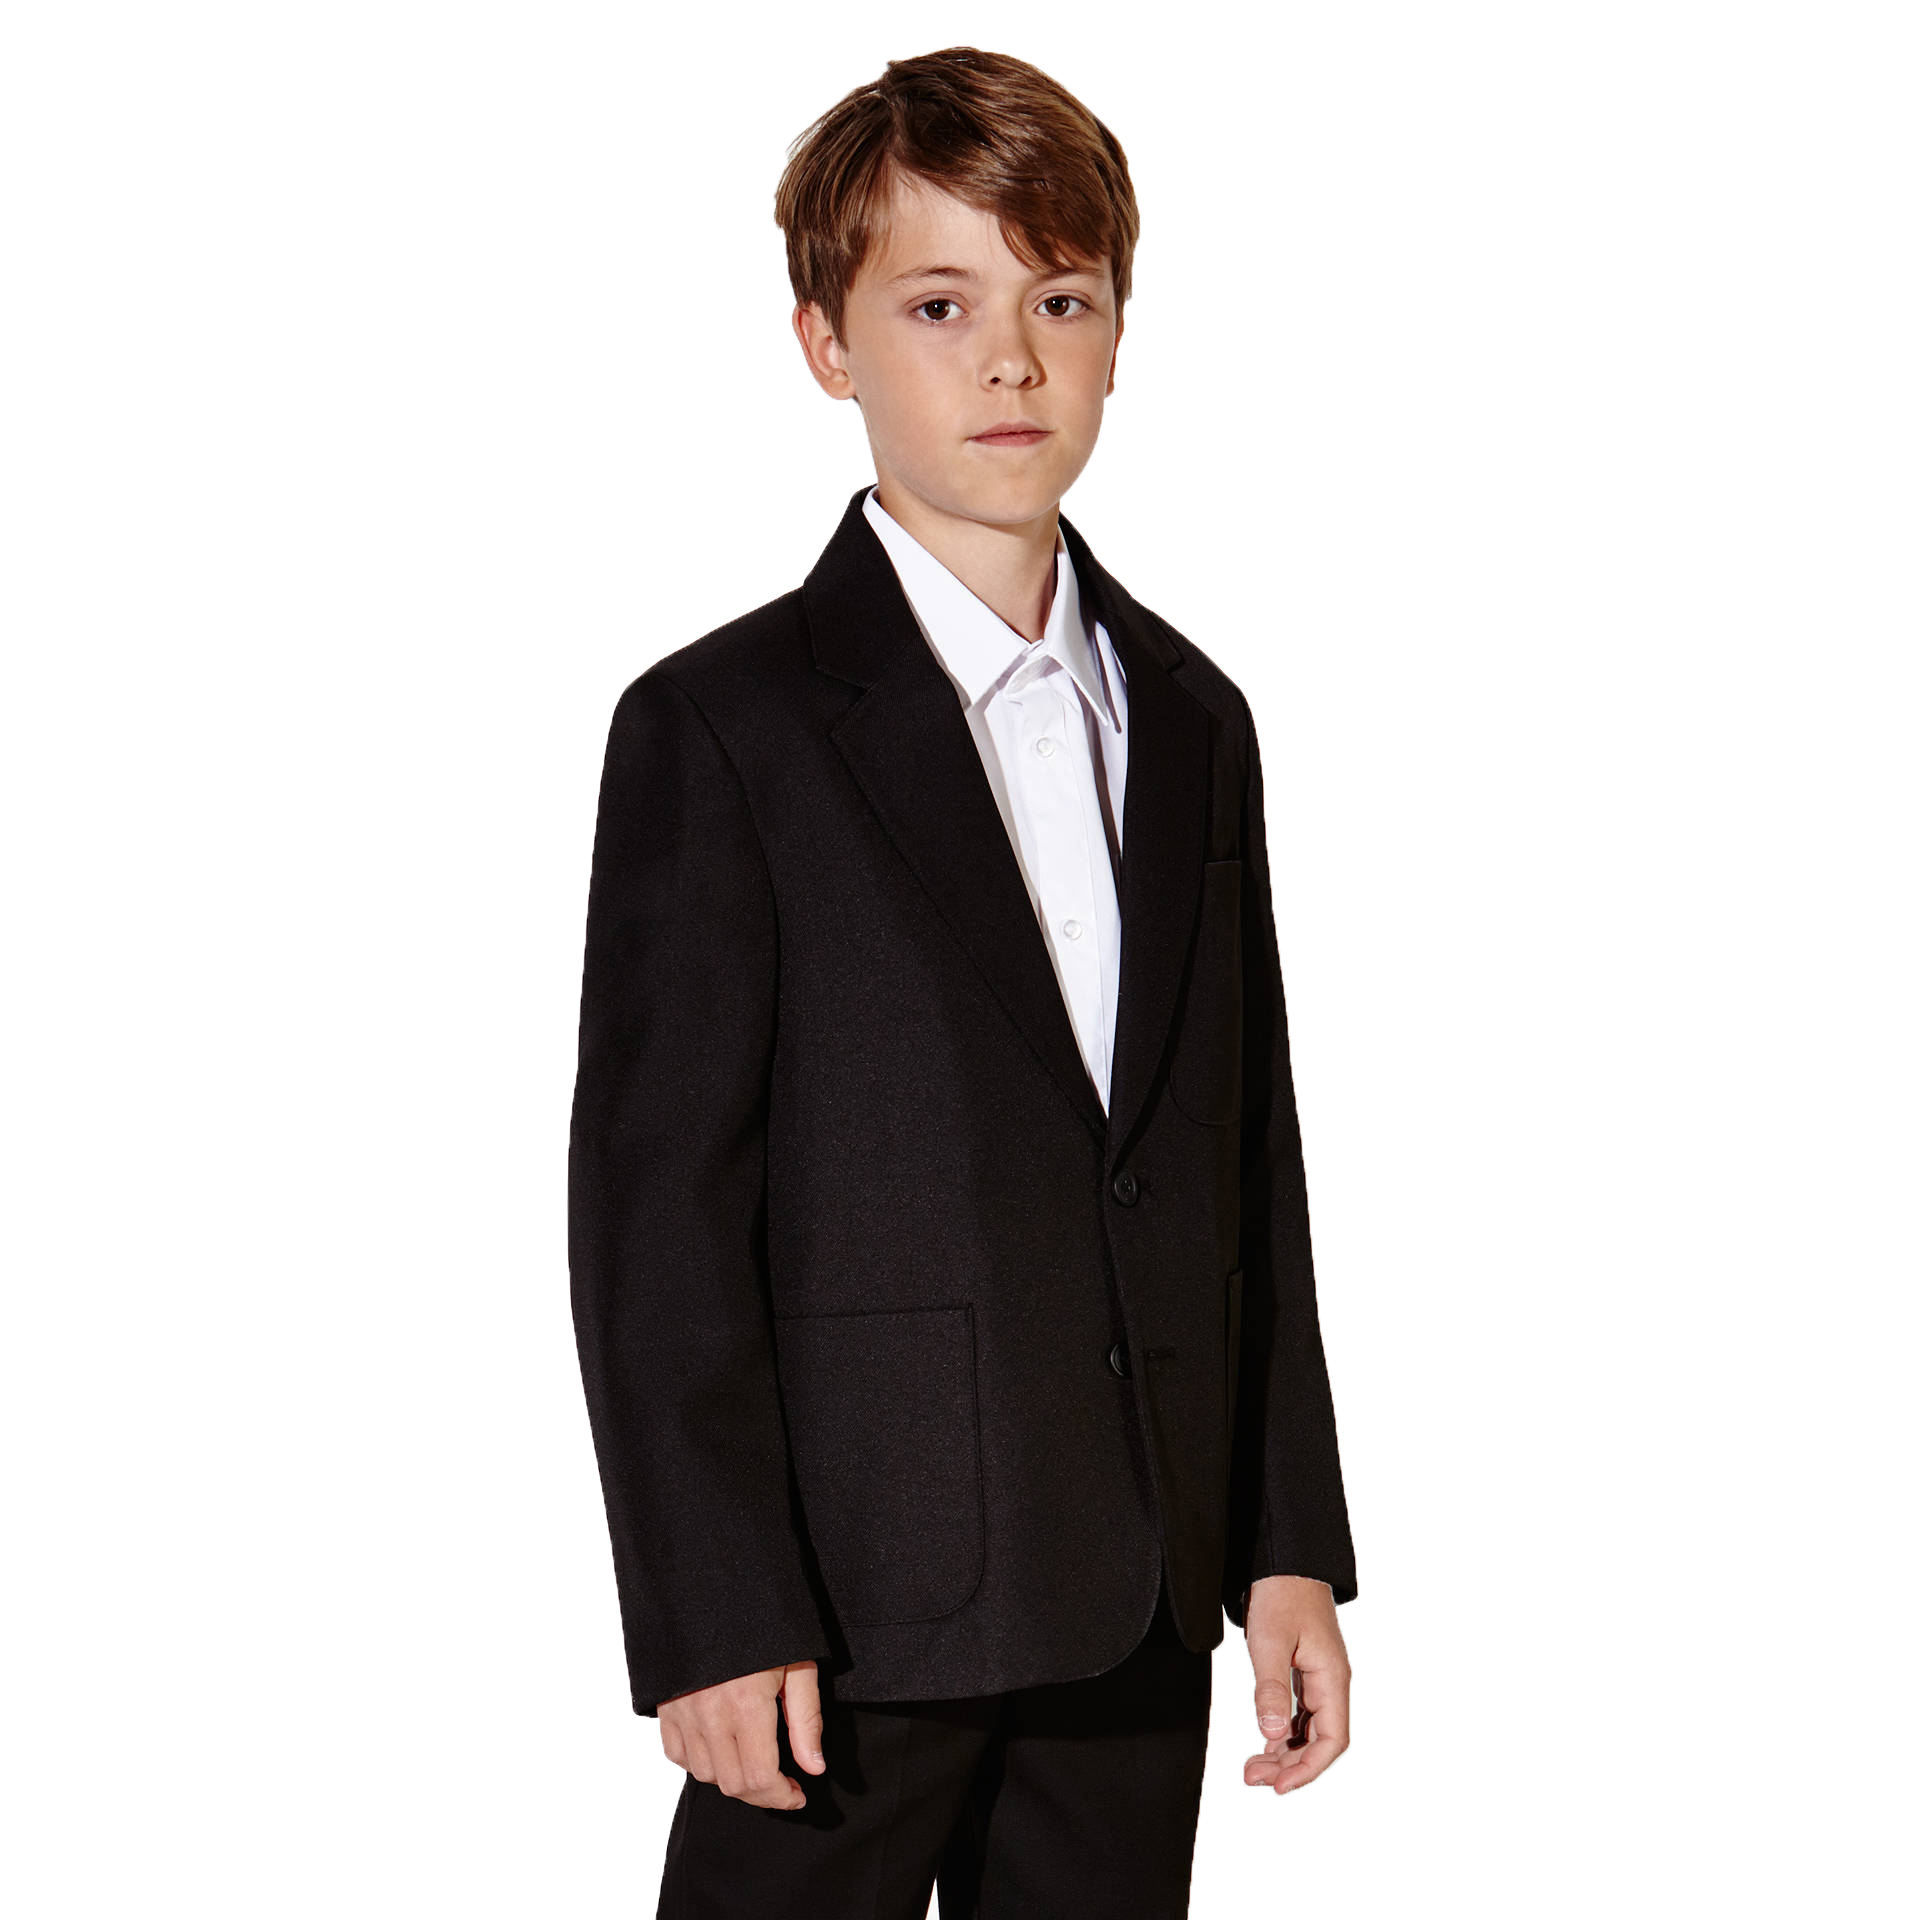 School Blazer Boys School Uniform Set With Patch Pockets